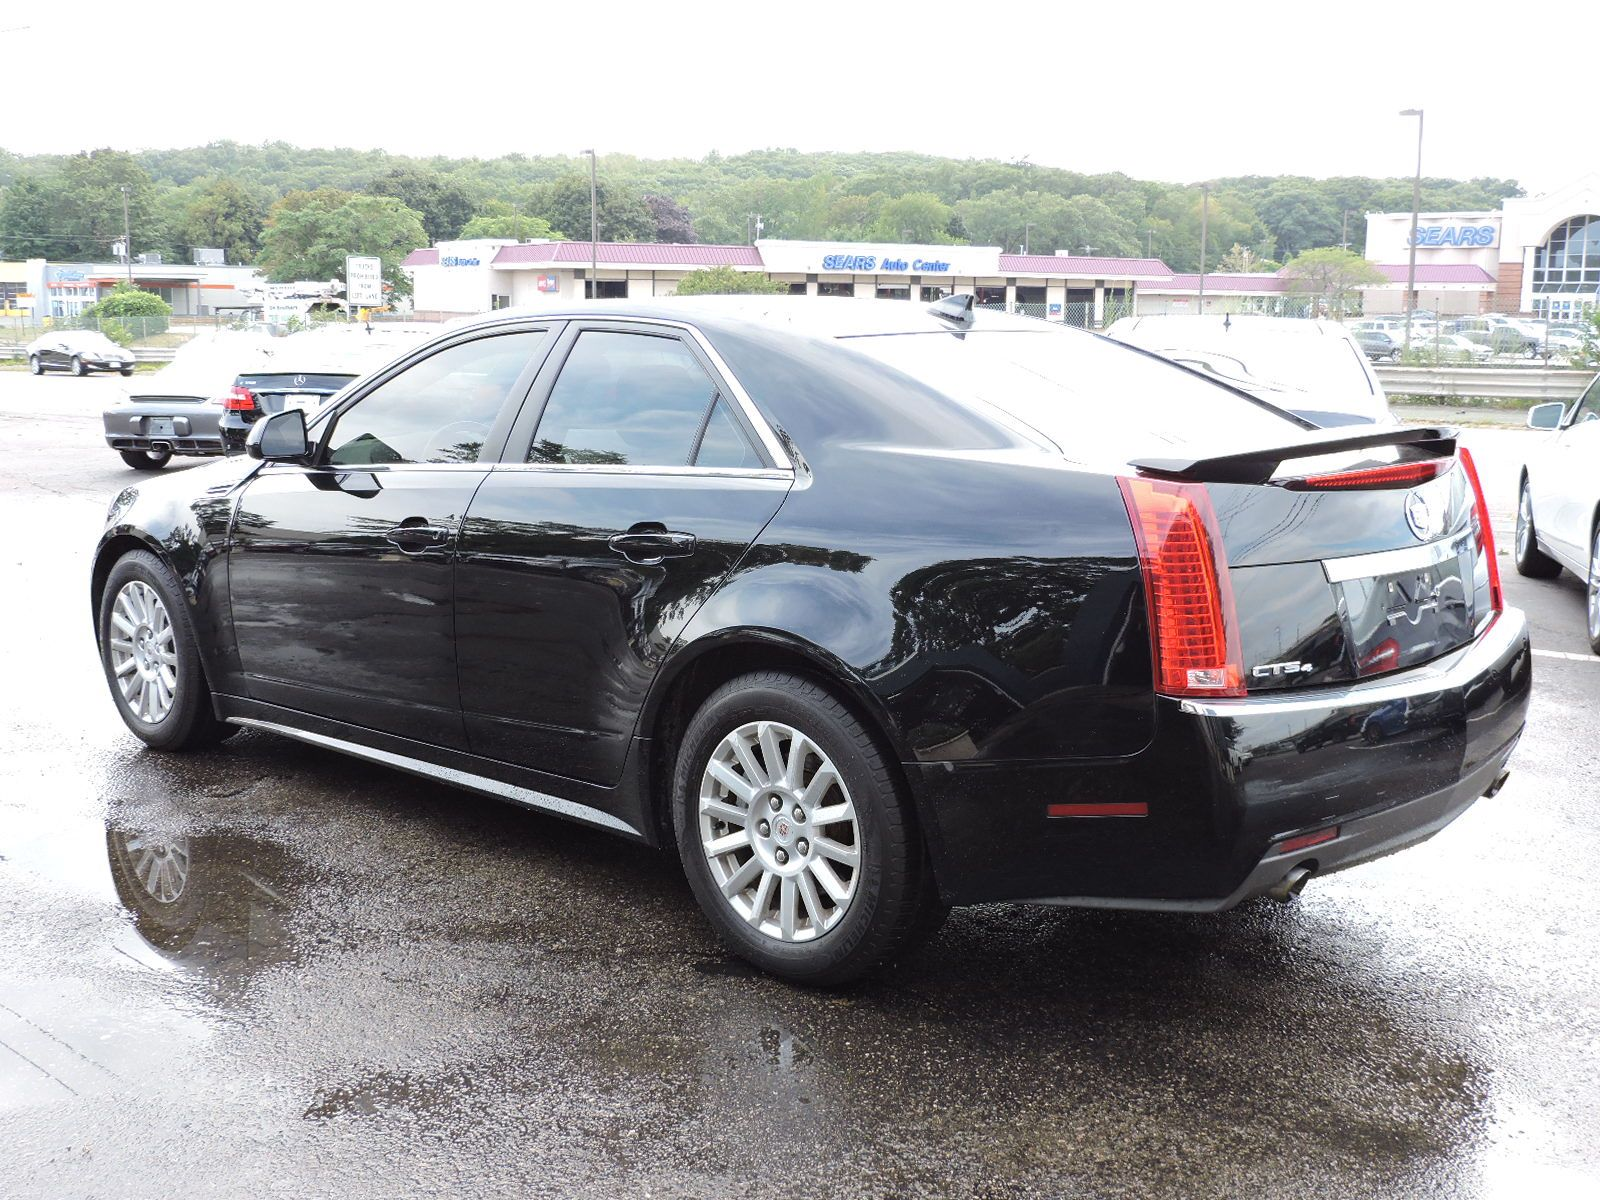 xf mks and jaguar sts cadillac vs overview veh lincoln compare cars